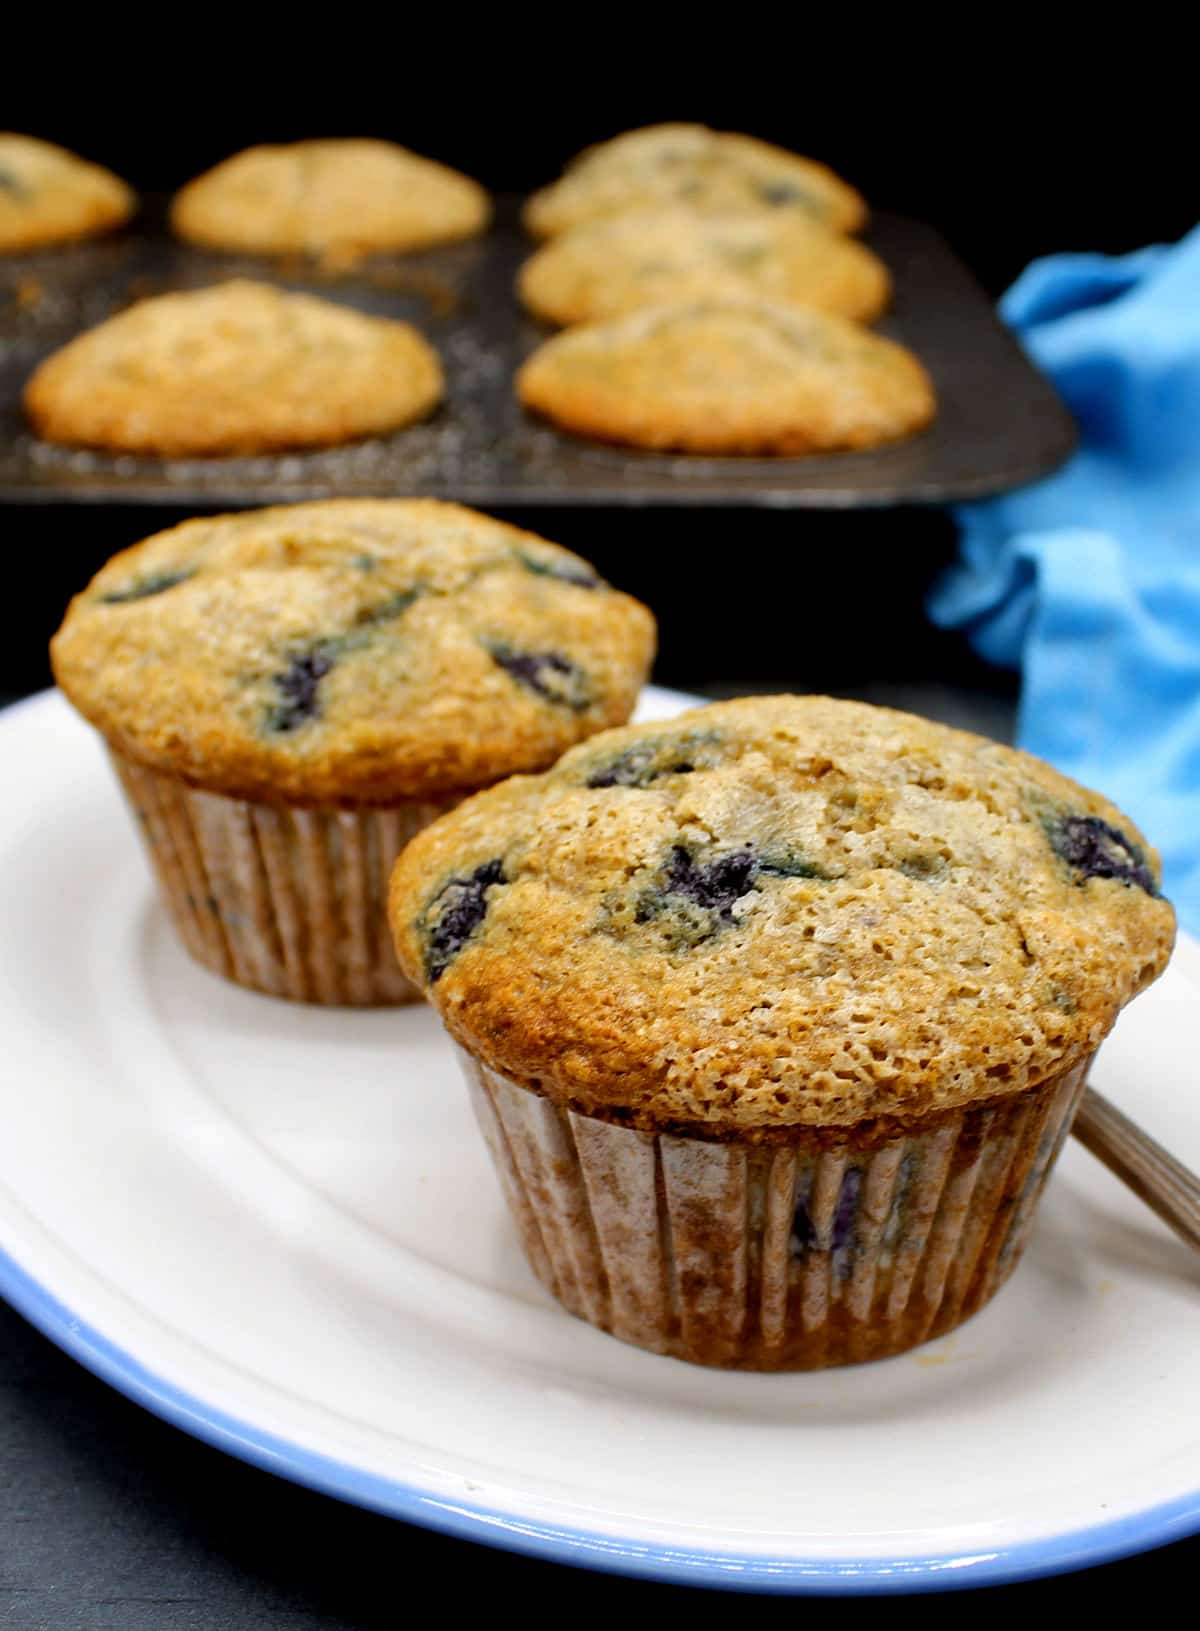 Front shot of two golden vegan blueberry muffins with the muffin pan in background.